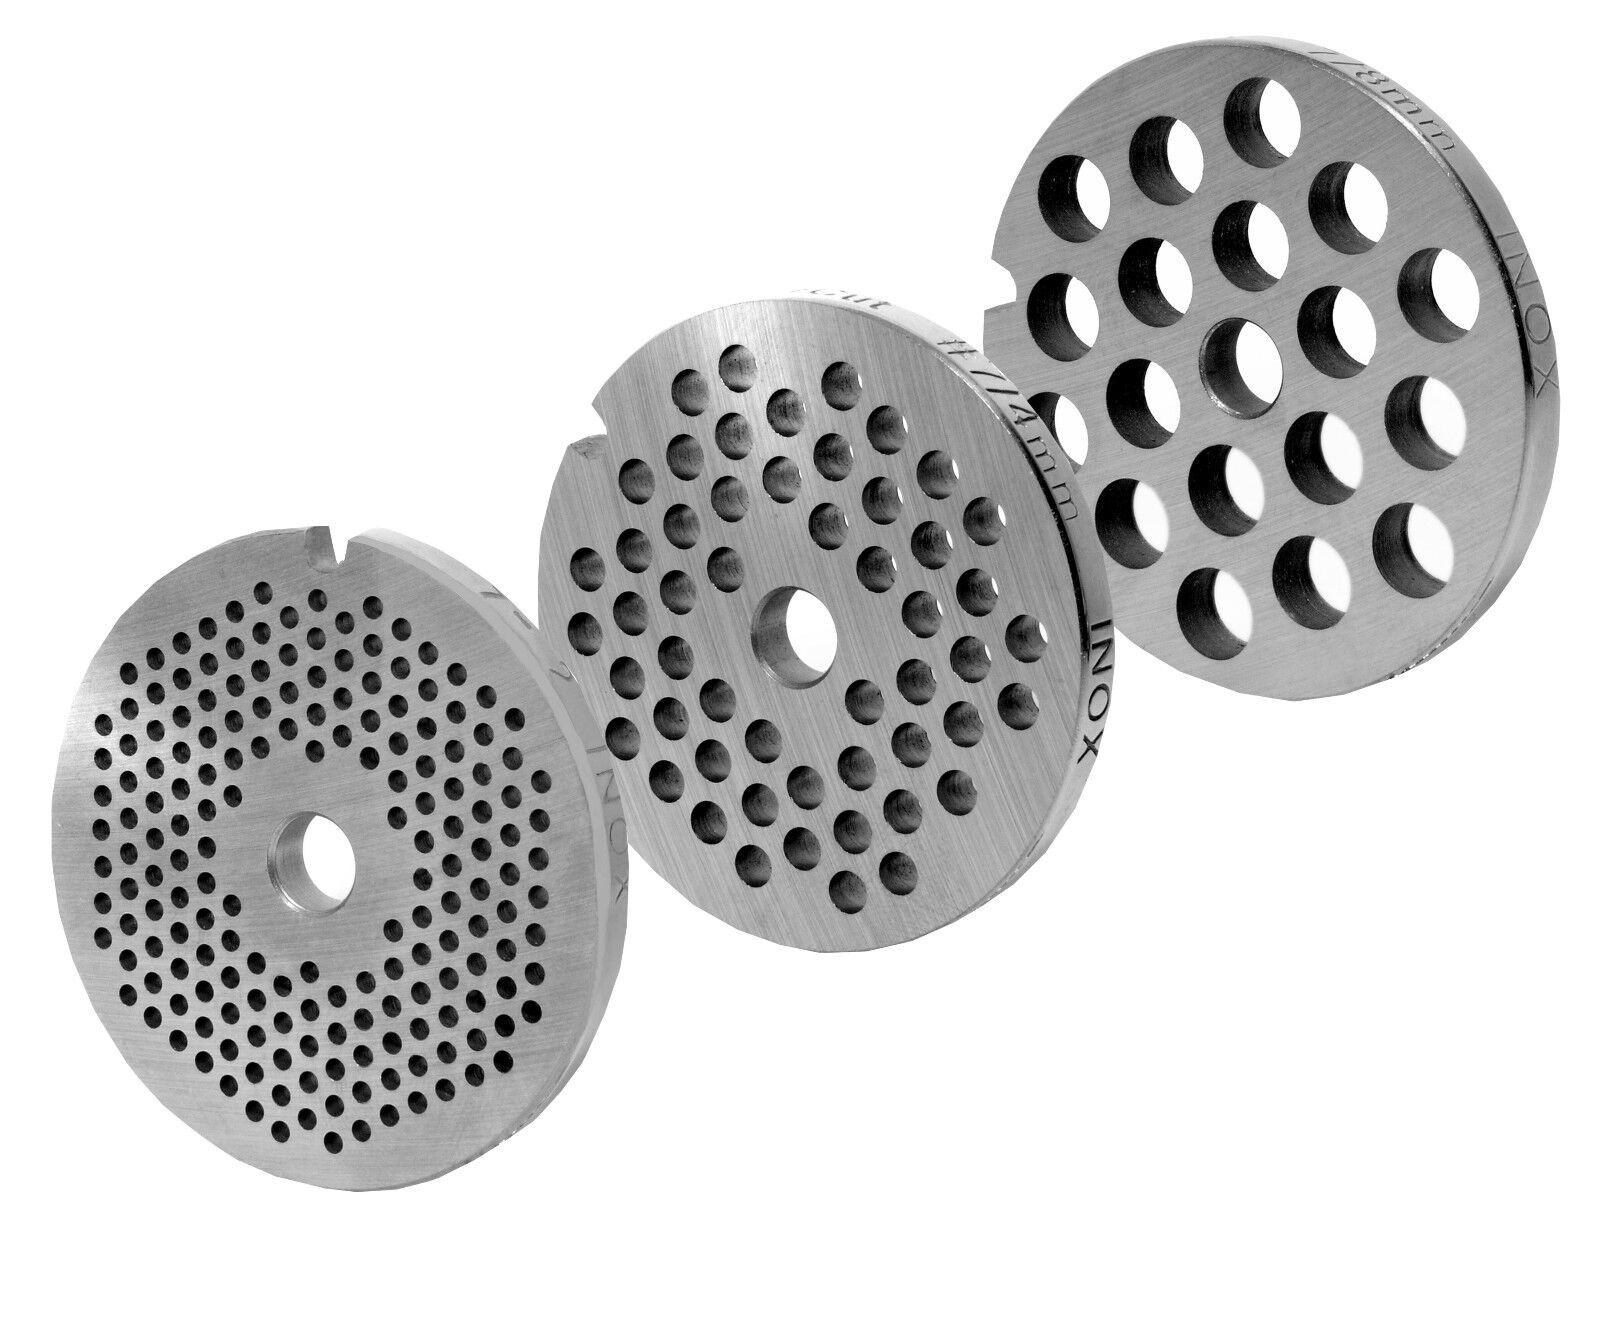 Perforated DISC SET FOR Mincer Sizes 7 0 3 32in+0 5 32in+0 5 16in